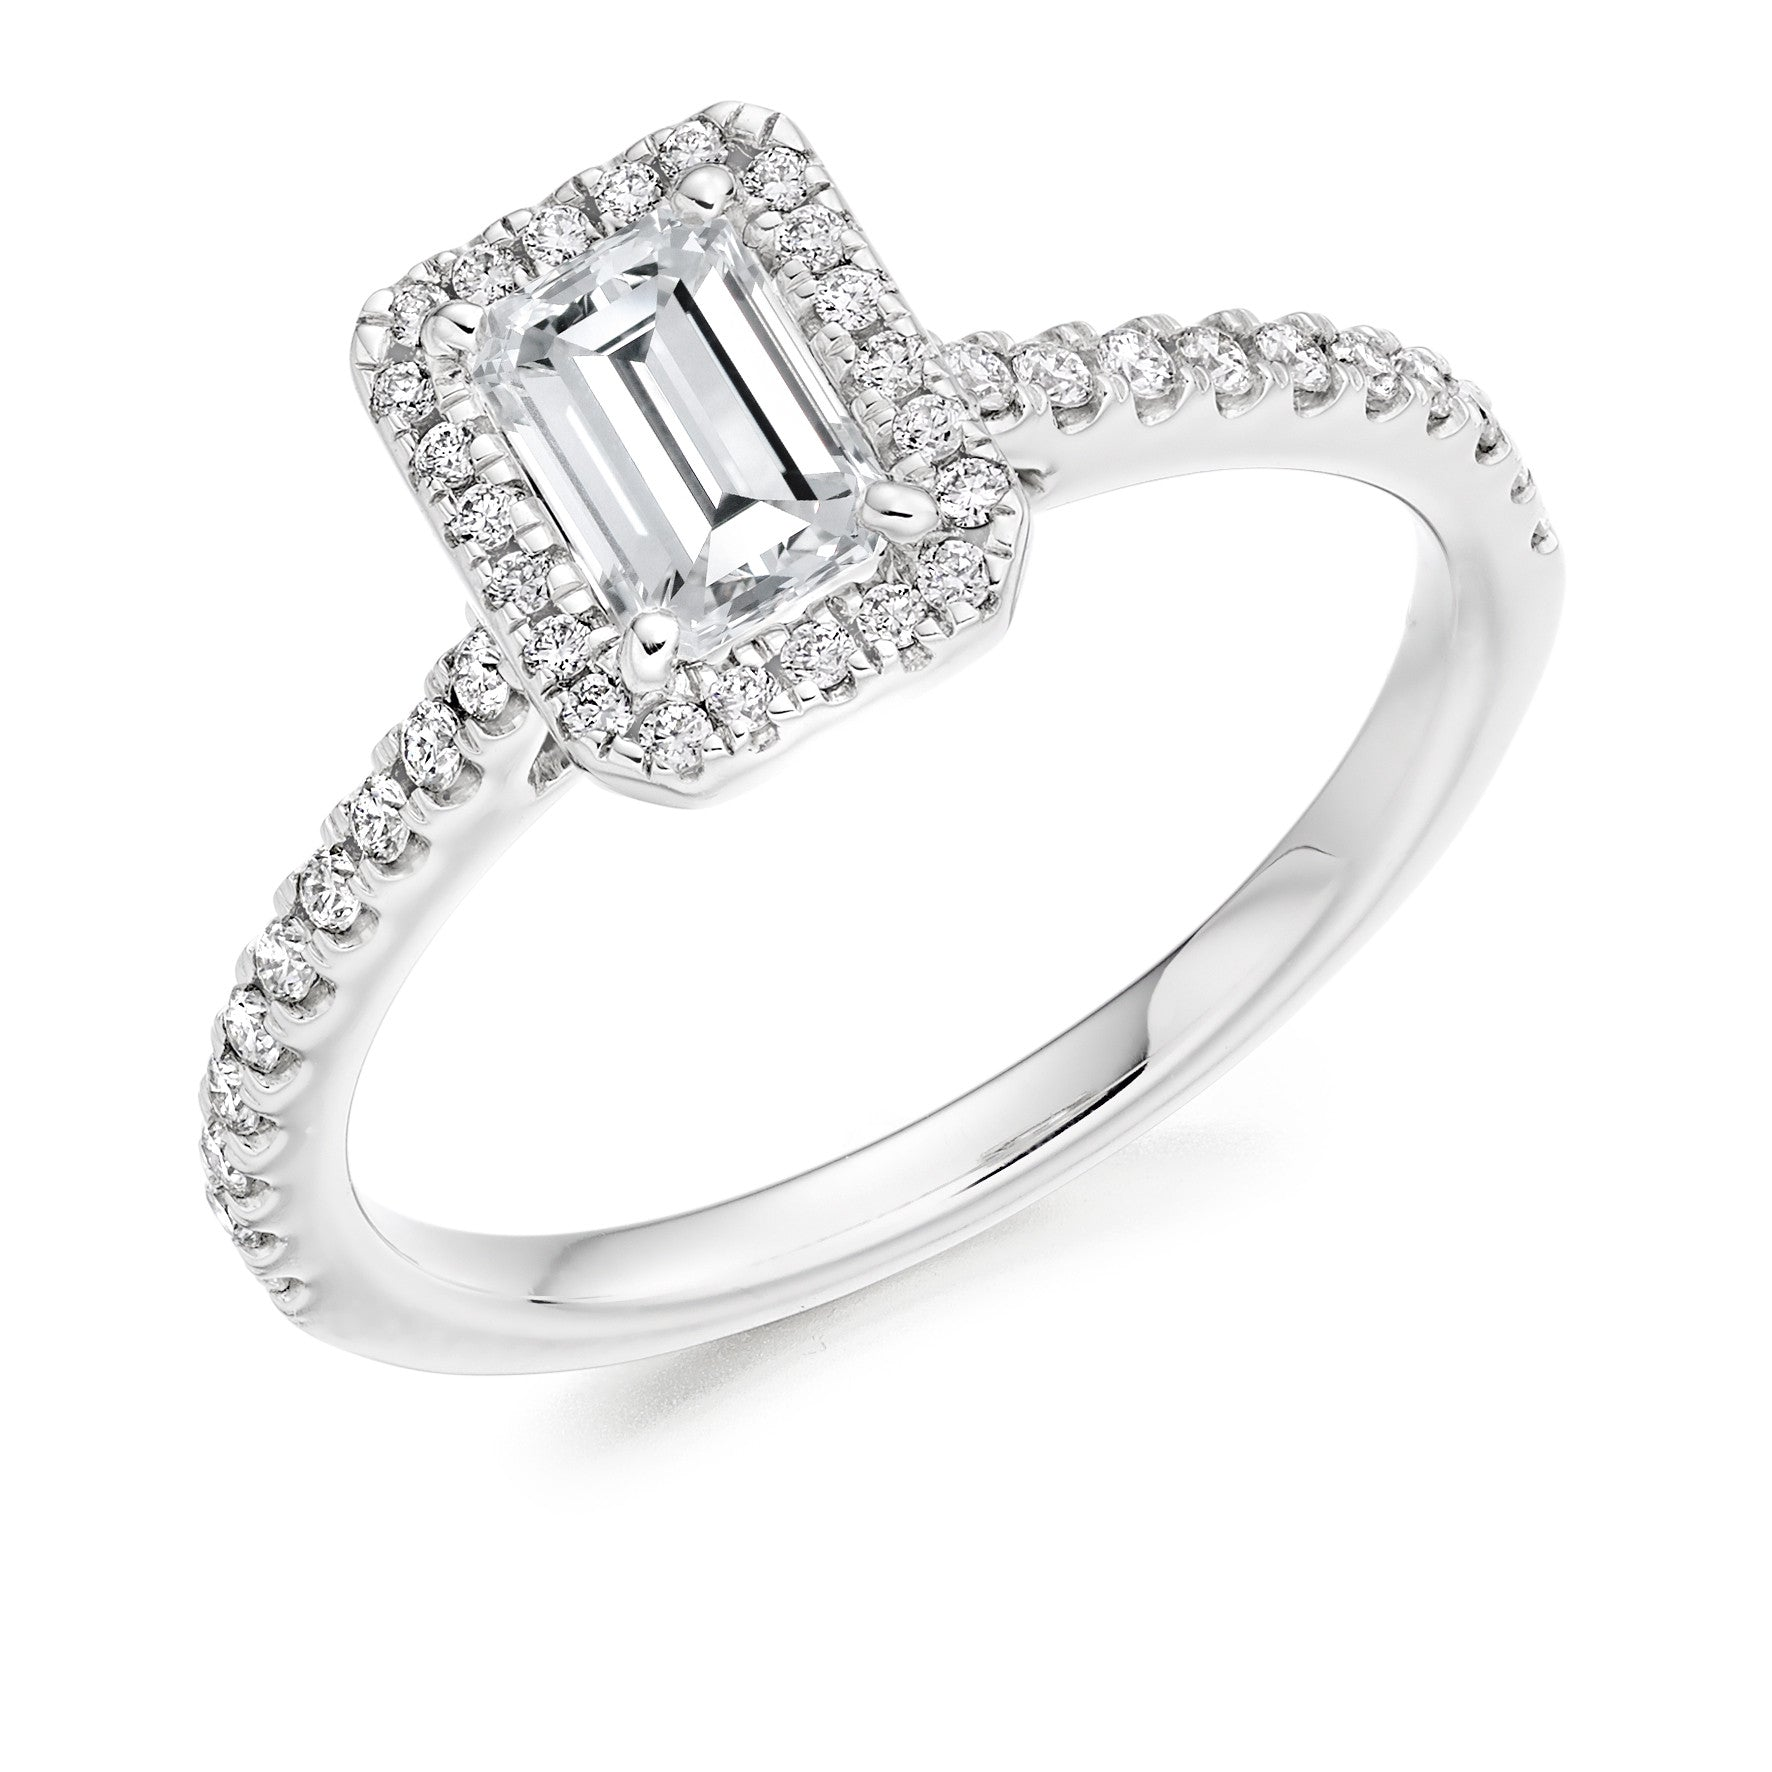 Cluster Engagement Ring 75pt - Emerald Cut (GOLD-PALLADIUM-PLATINUM)